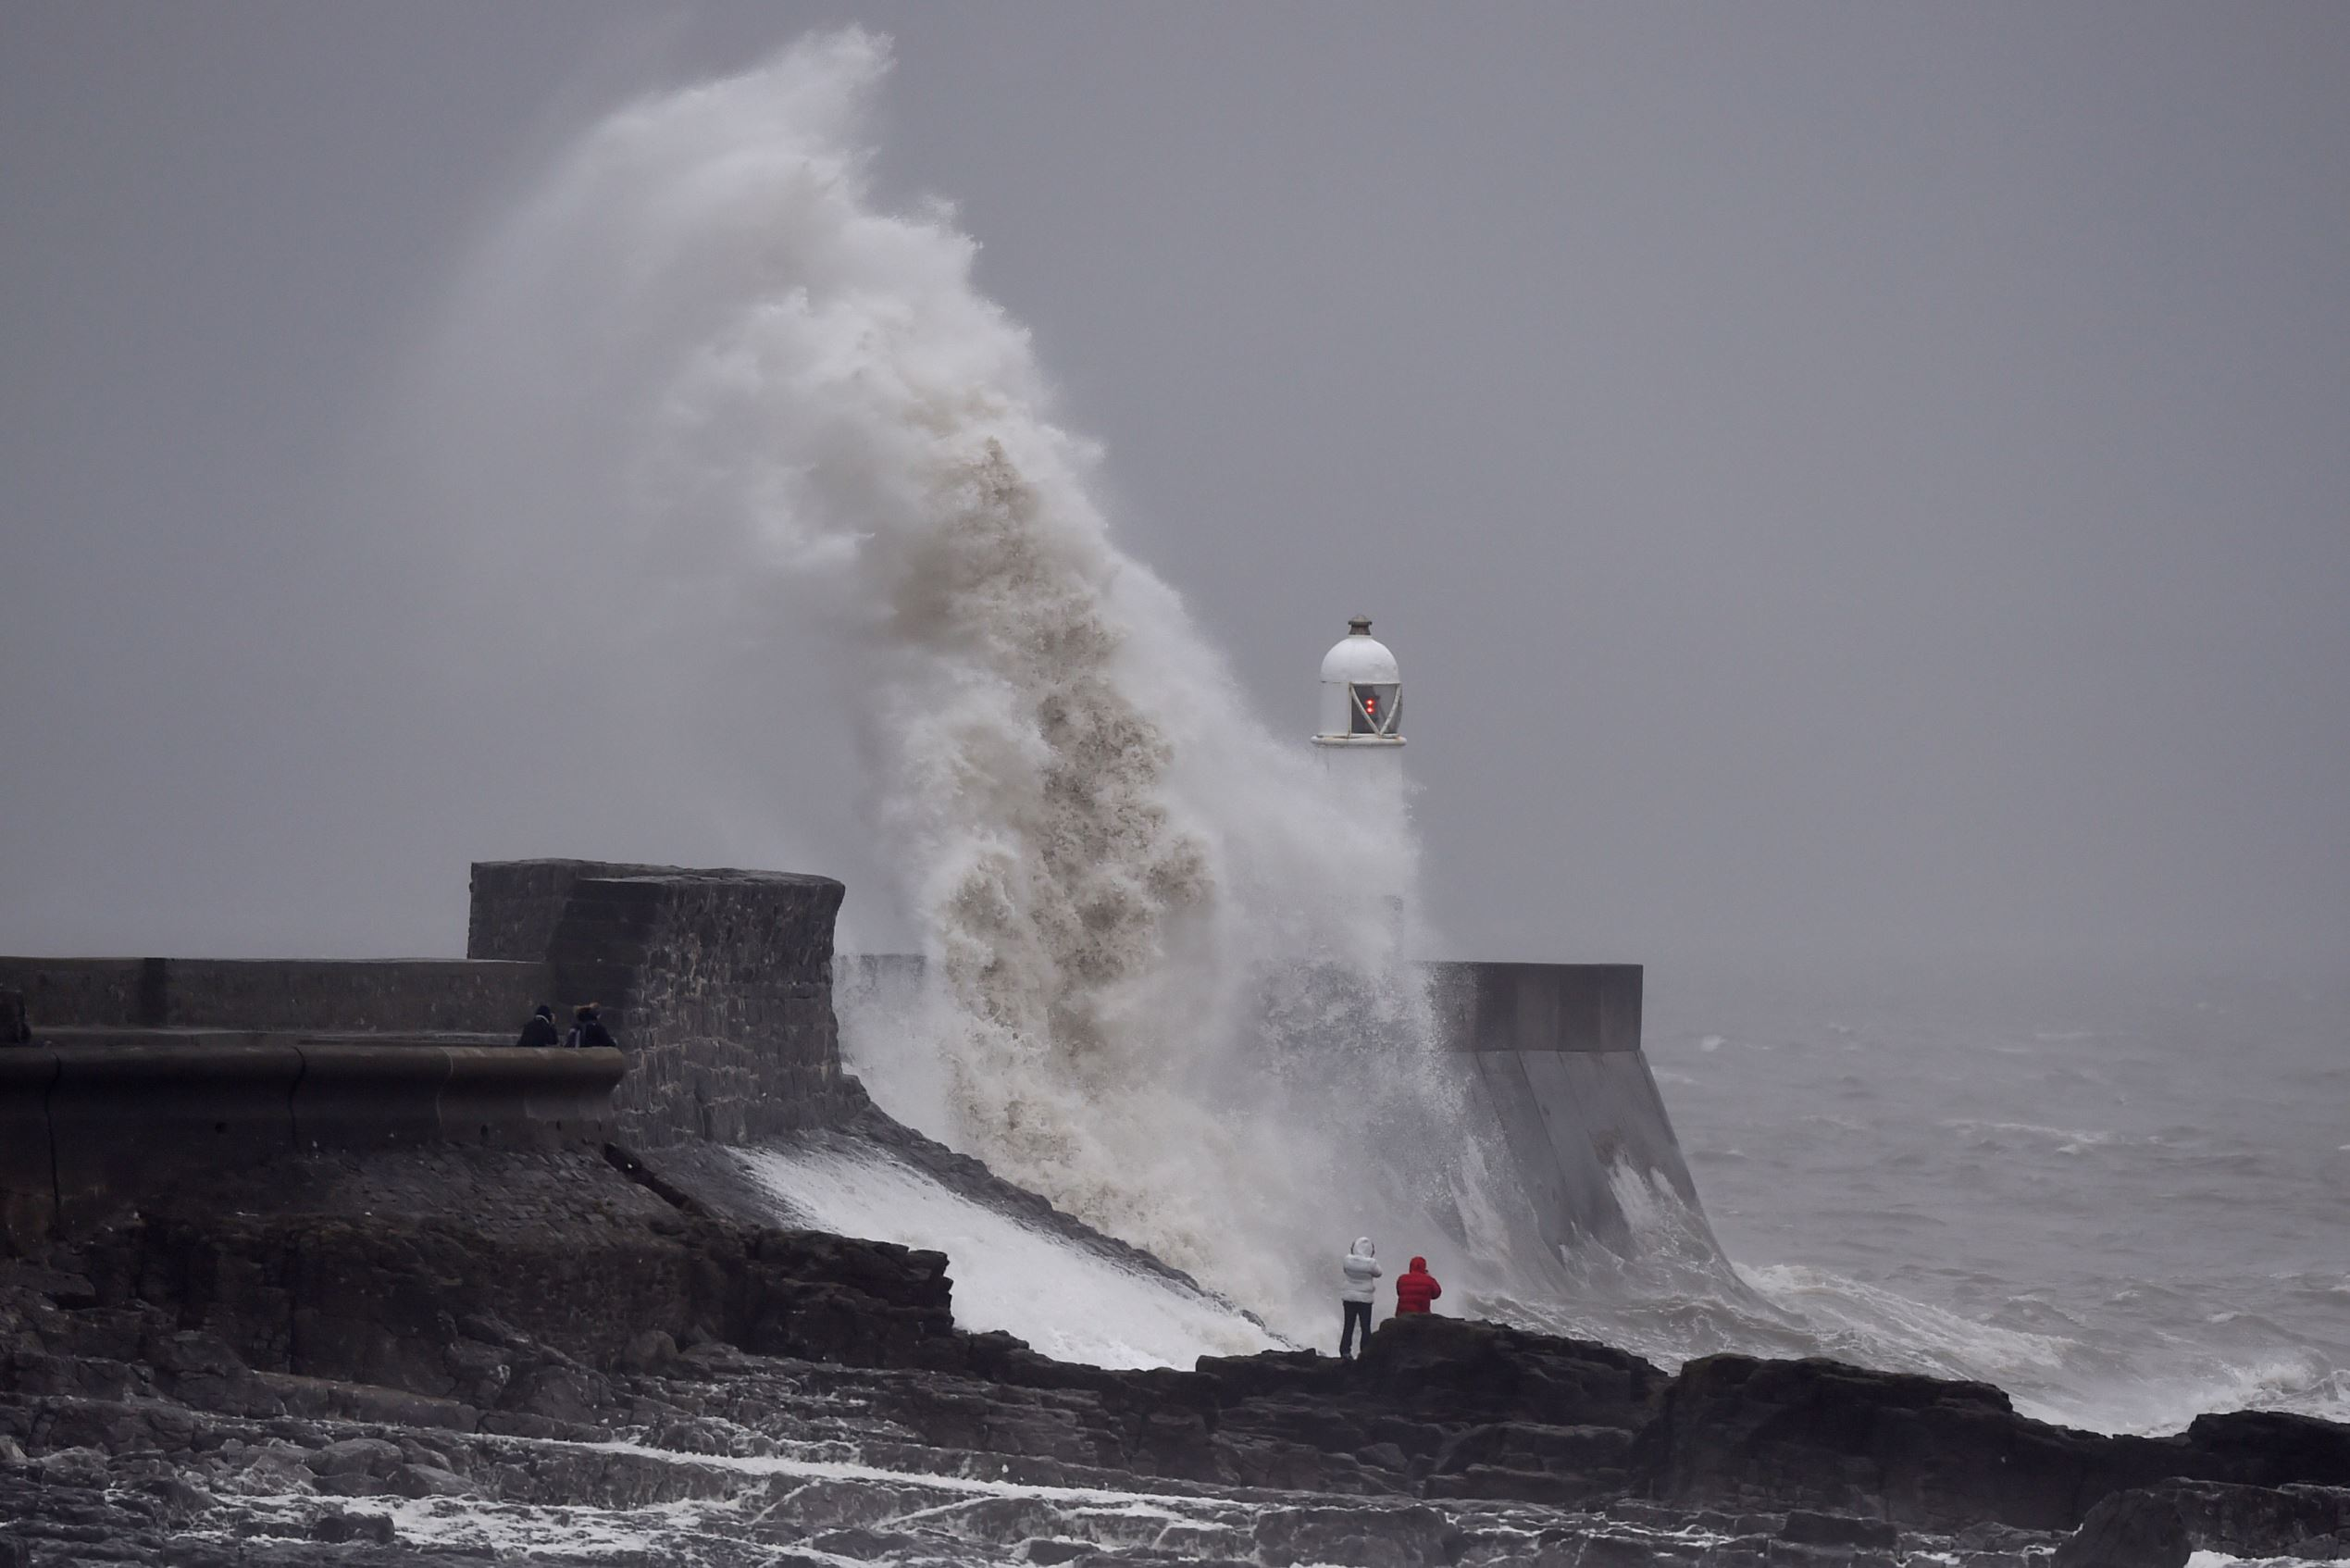 Слайд 18 из 86: Waves crash over the lighthouse at Porthcawl, Wales, February 1, 2016. Gale force winds are affecting parts of Wales. REUTERS/Rebecca Naden TPX IMAGES OF THE